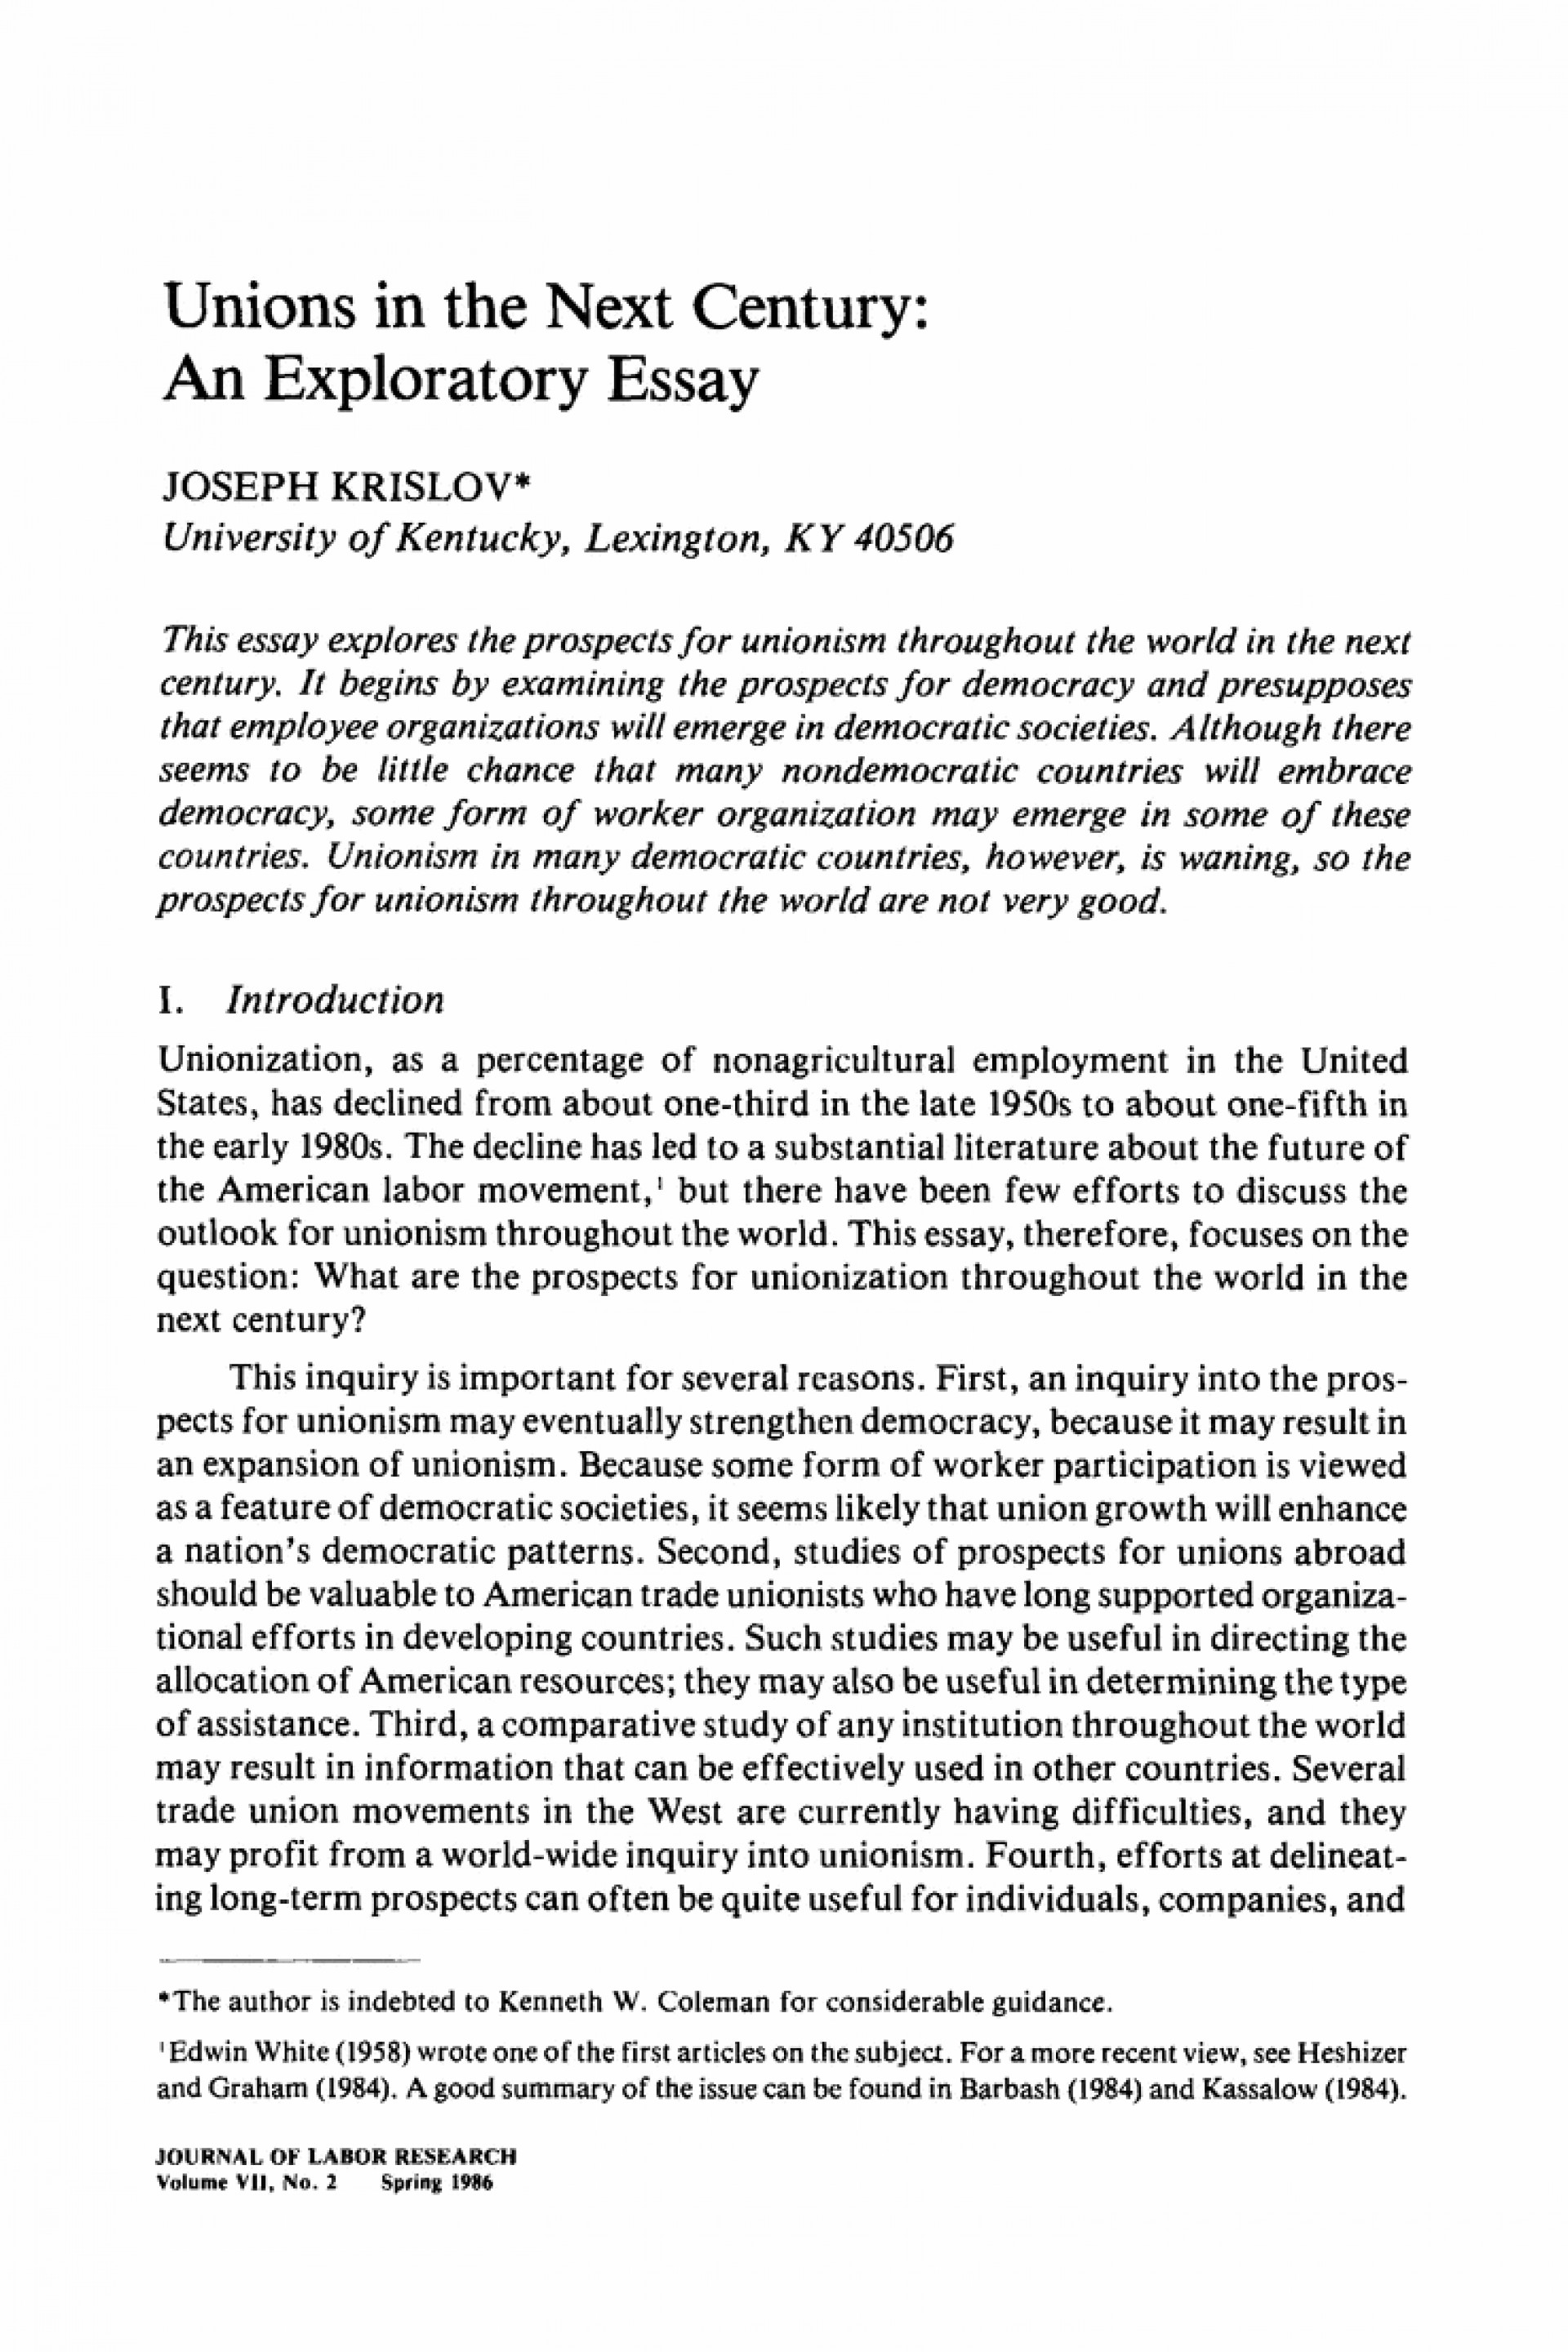 001 Exploratory Essay Example Unions In The Next Century An Springer L Stunning Definition Topics About Sports Sample Pdf 1920